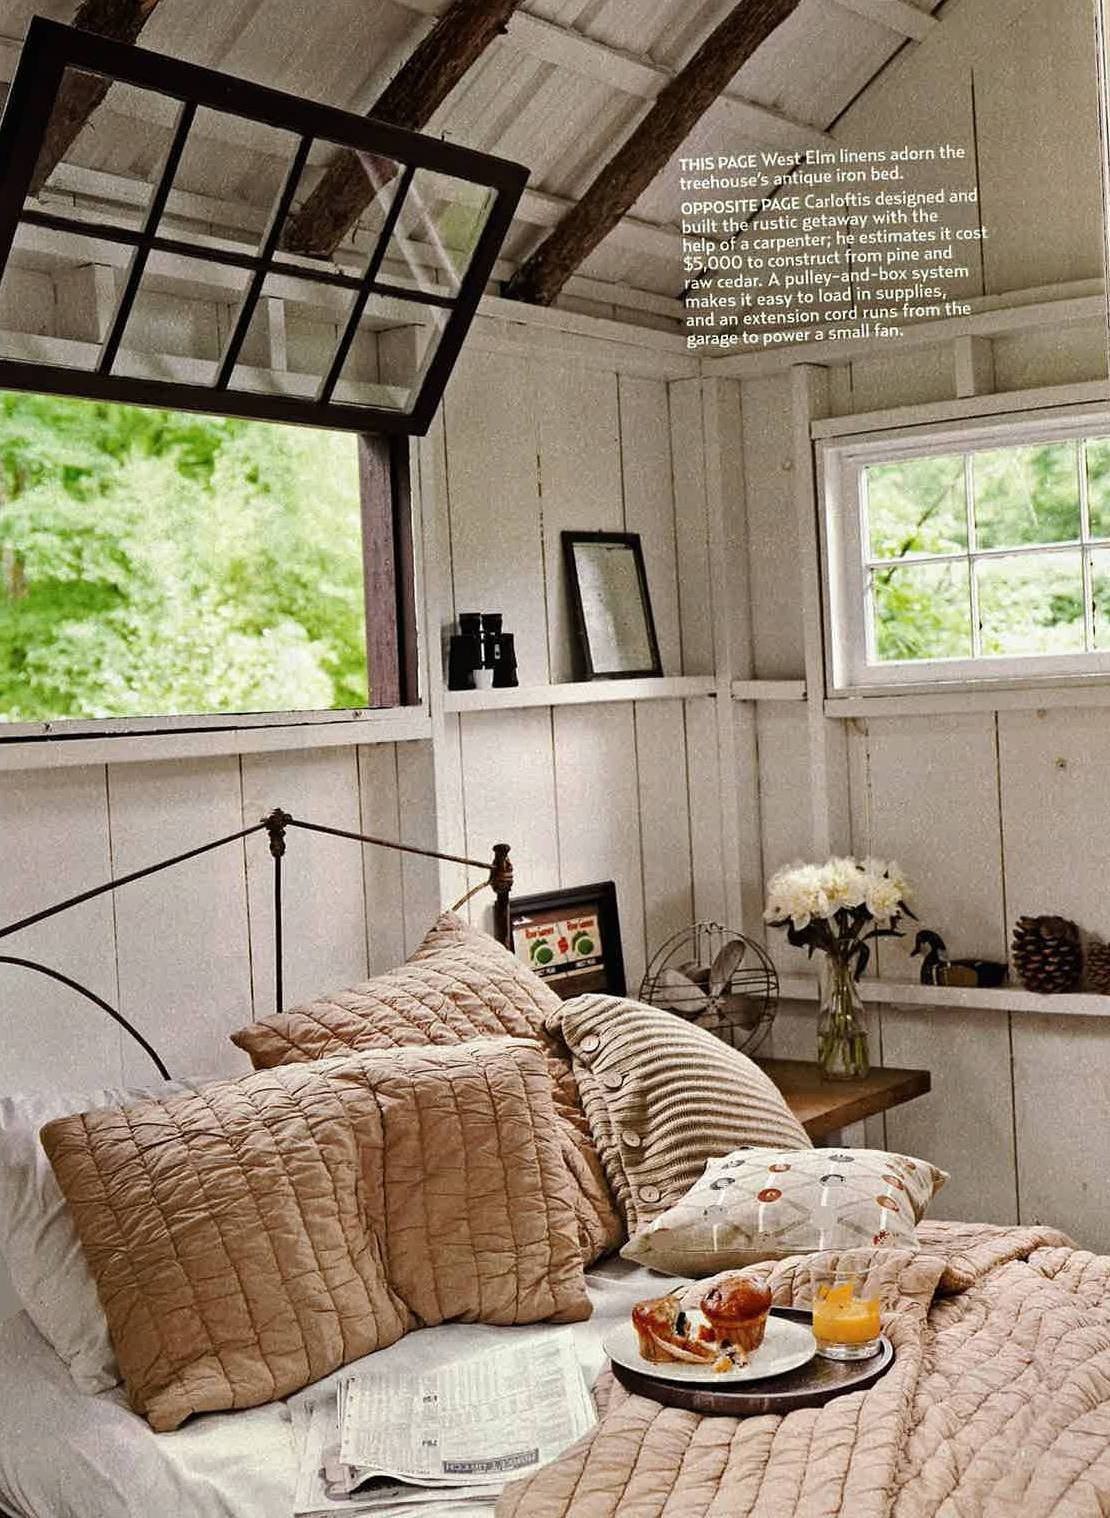 Bedroom Living Prayer Room And Study Room: Feather And Nest: Tea & Toast:: Shed Interiors